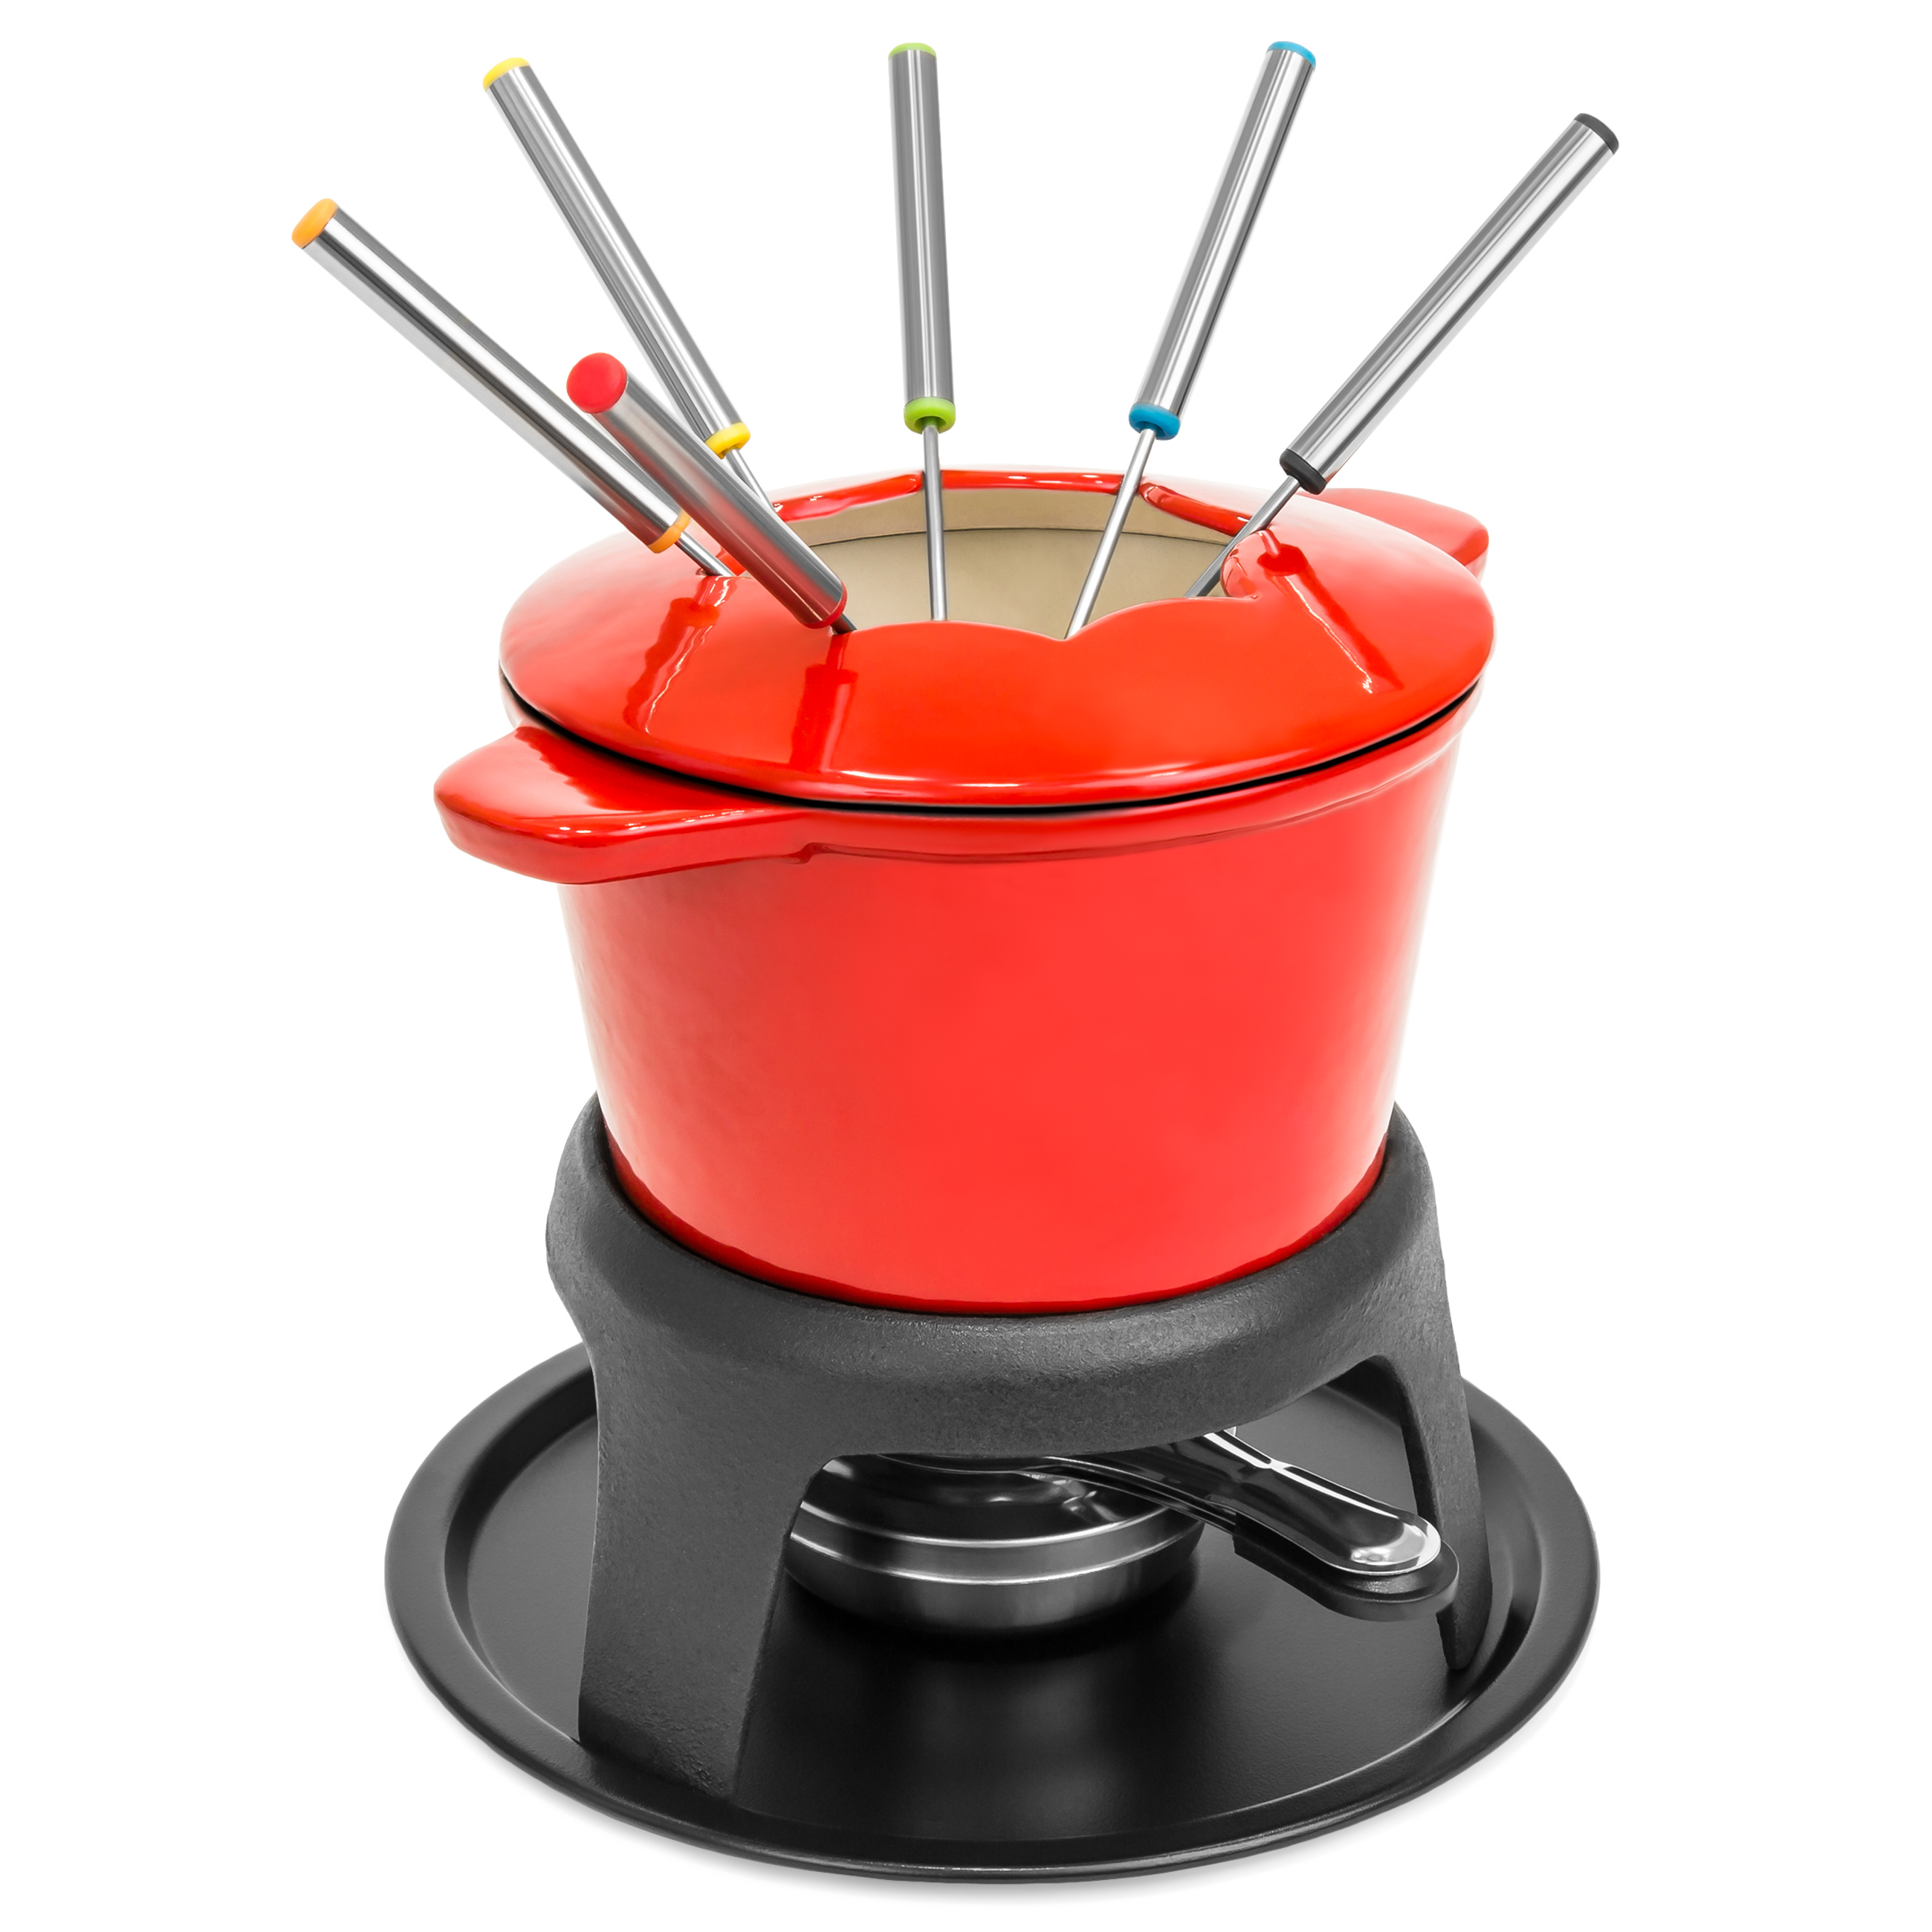 Best Choice Products Cast Iron Enamel Fondue Set w/ 6 Forks, Carrying Handles, and Splash Protector - Red